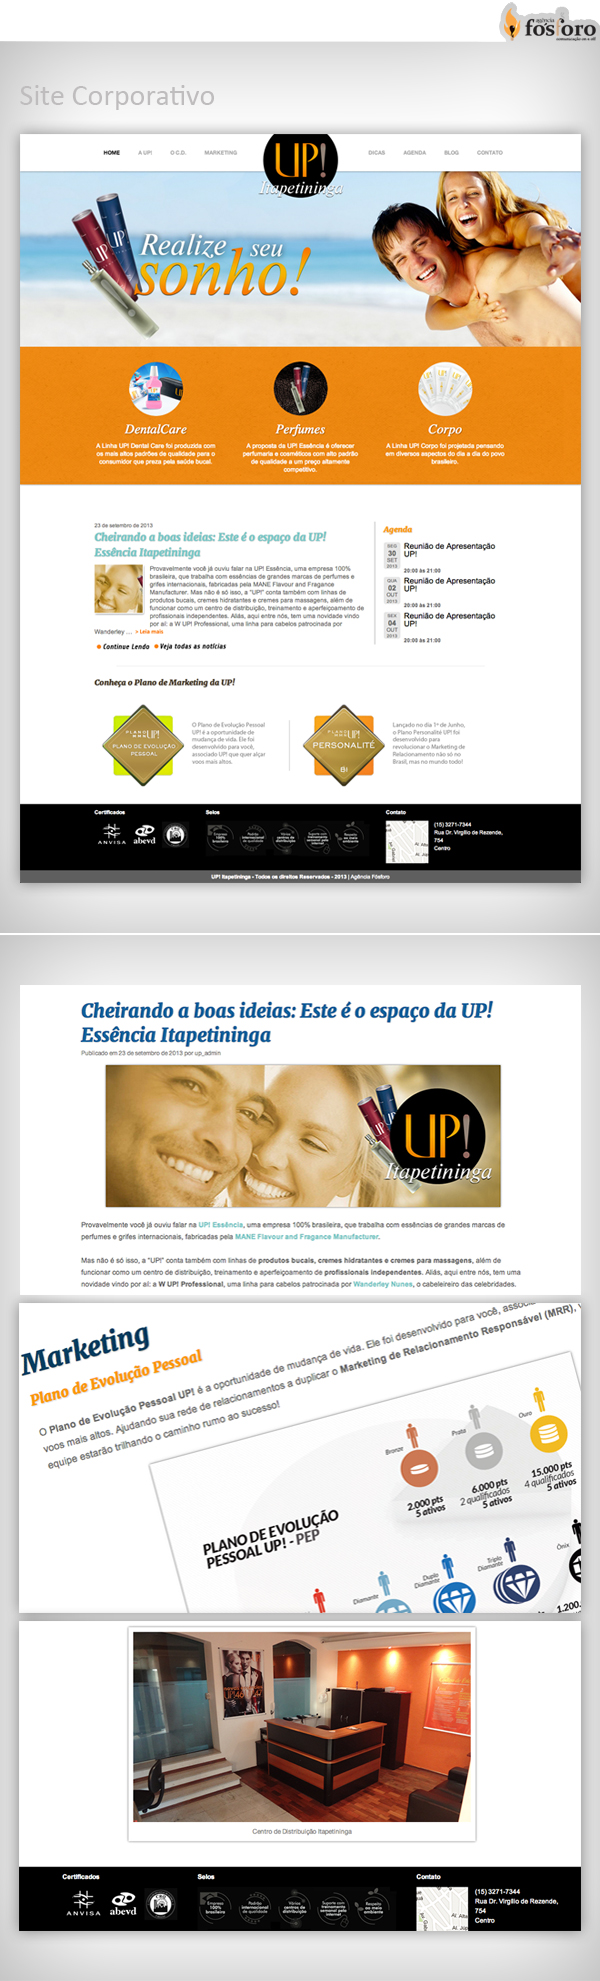 site-corporativo-up-essencia-itapetininga